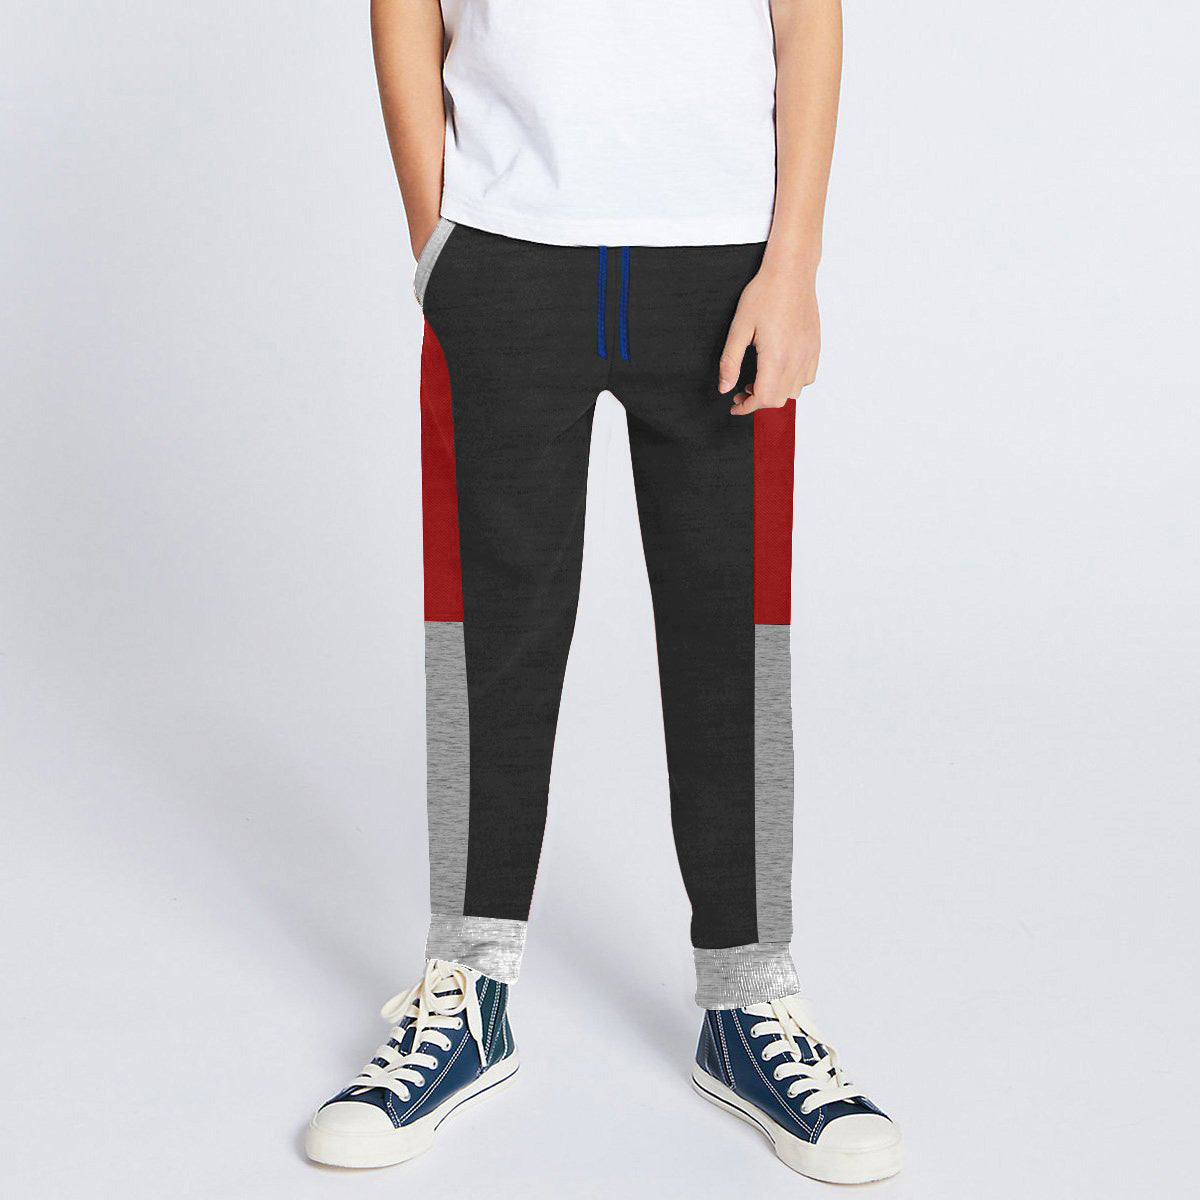 Next Slim Fit Jogger Trouser For Kids-Charcoal with Red & Grey Melange Panels-SP2641